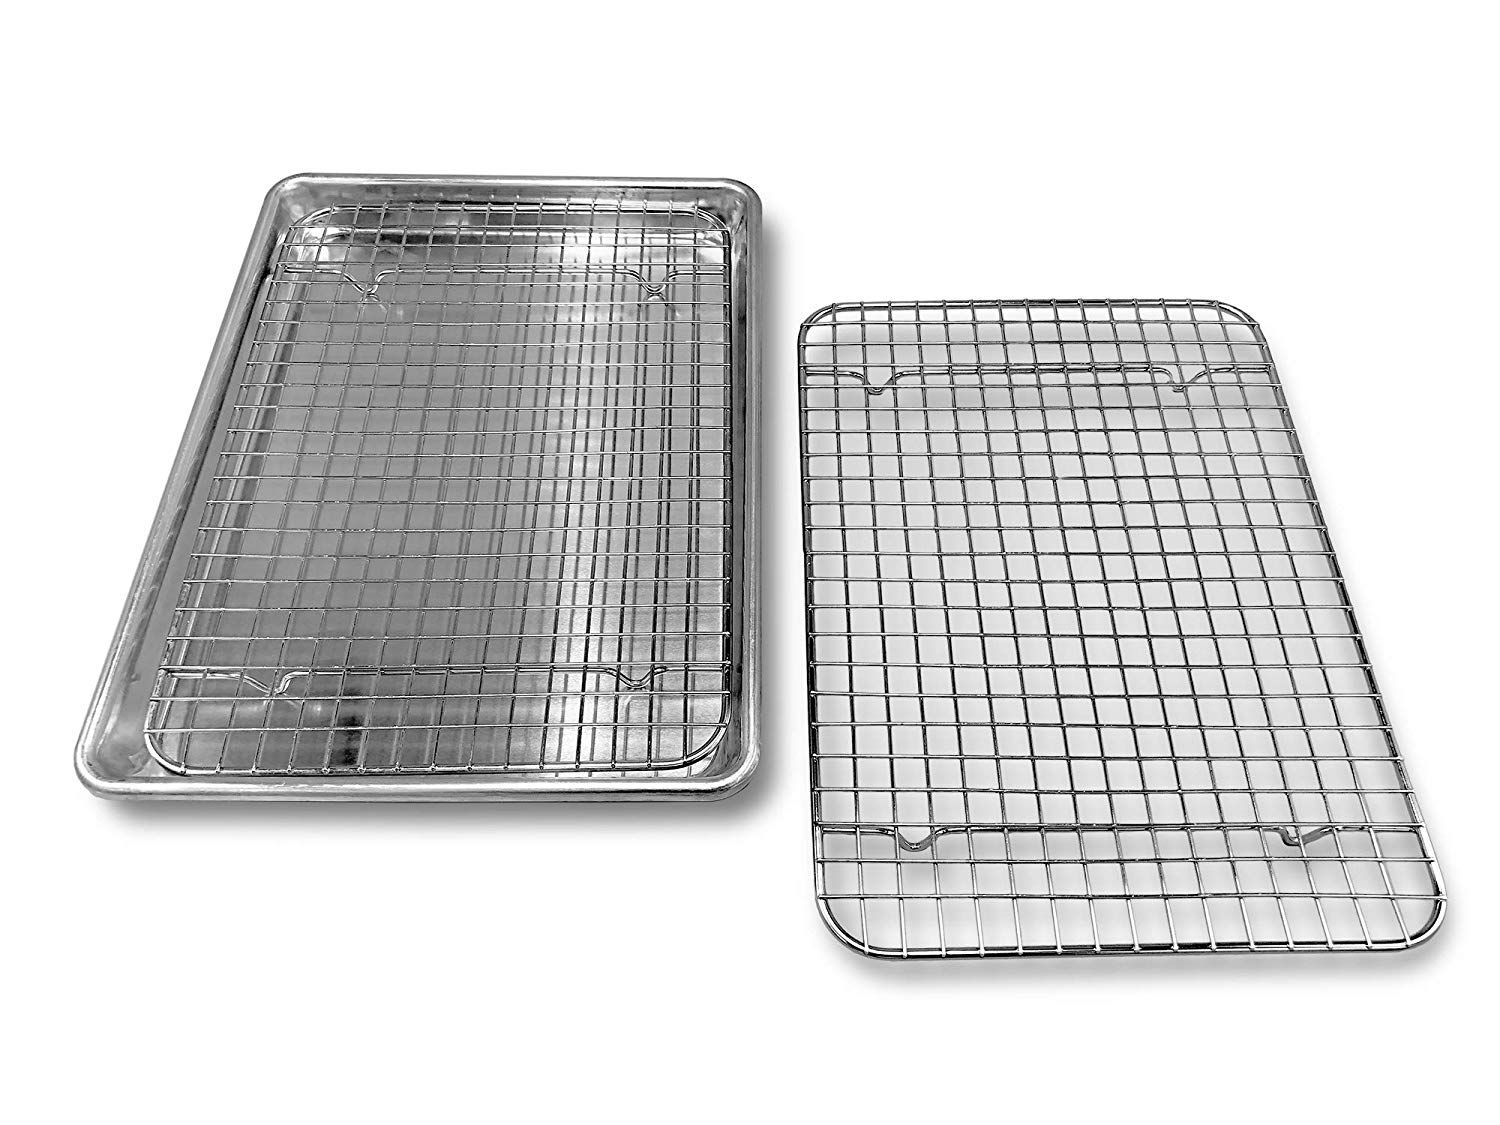 Goson Heavy Duty Stainless Steel Bakeware Quarter 1 4 Size Cross Wire Rack 8 5 Inches By 12 Inches And Bakin Stainless Steel Bakeware Oven Pan Baking Sheets